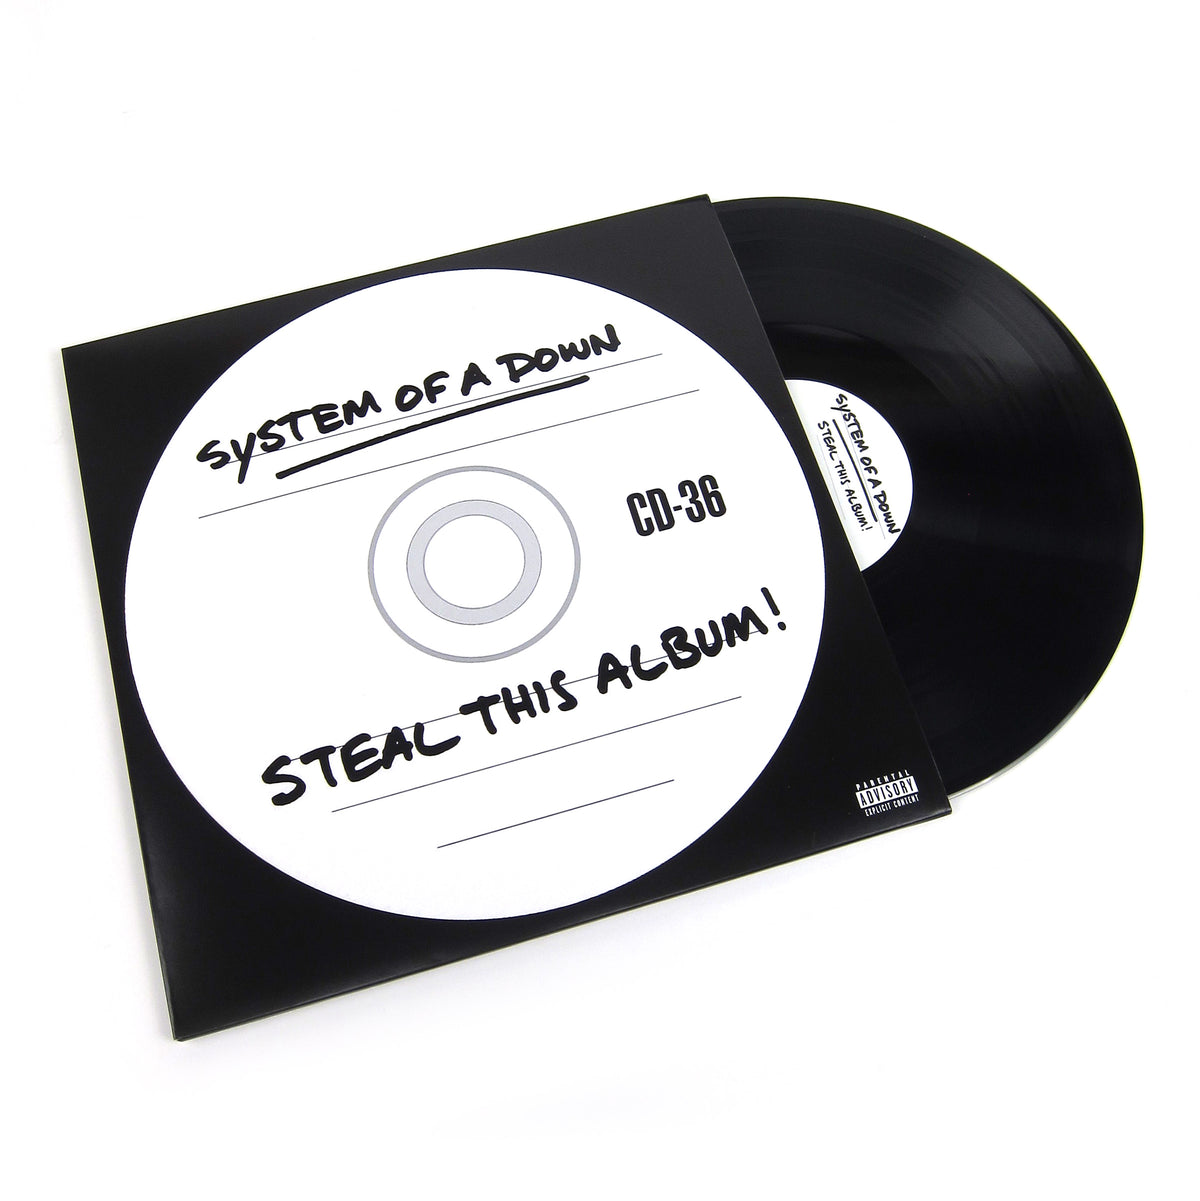 System Of A Down: Steal This Album! Vinyl 2LP